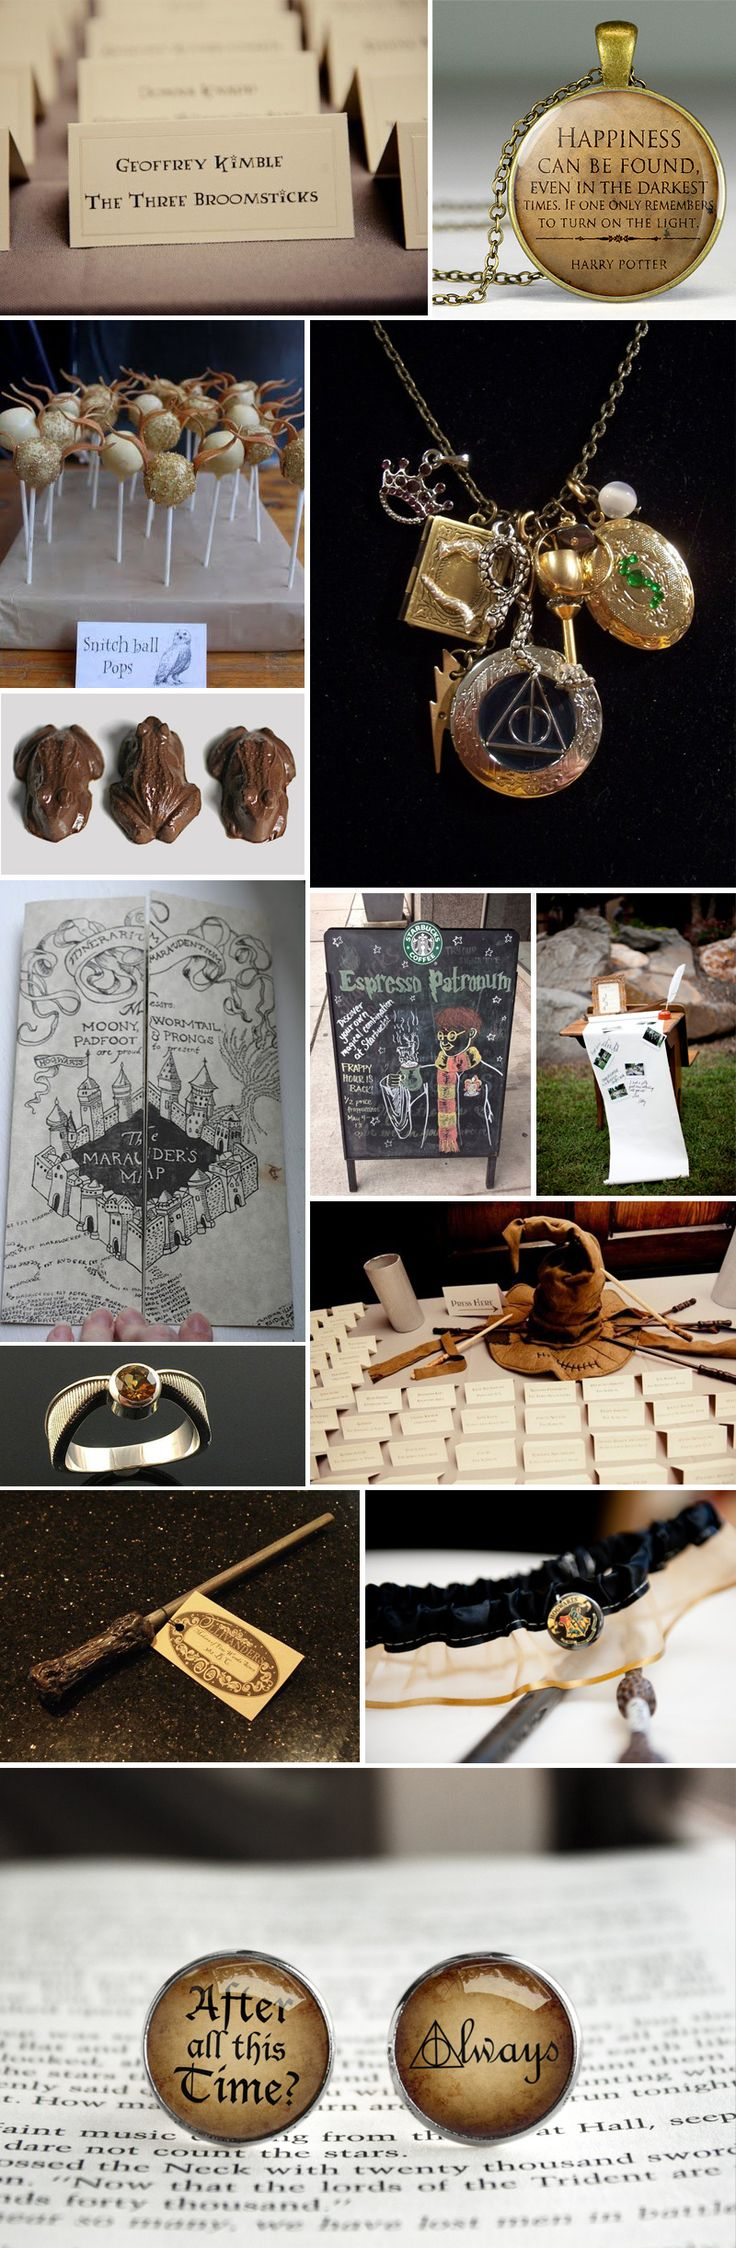 The most amazing wedding idea! Wednesday Wedding Inspiration: Harry Potter @Kenedee Malcom Charuk This is perfect for our wedding!!!!!!!! LOL